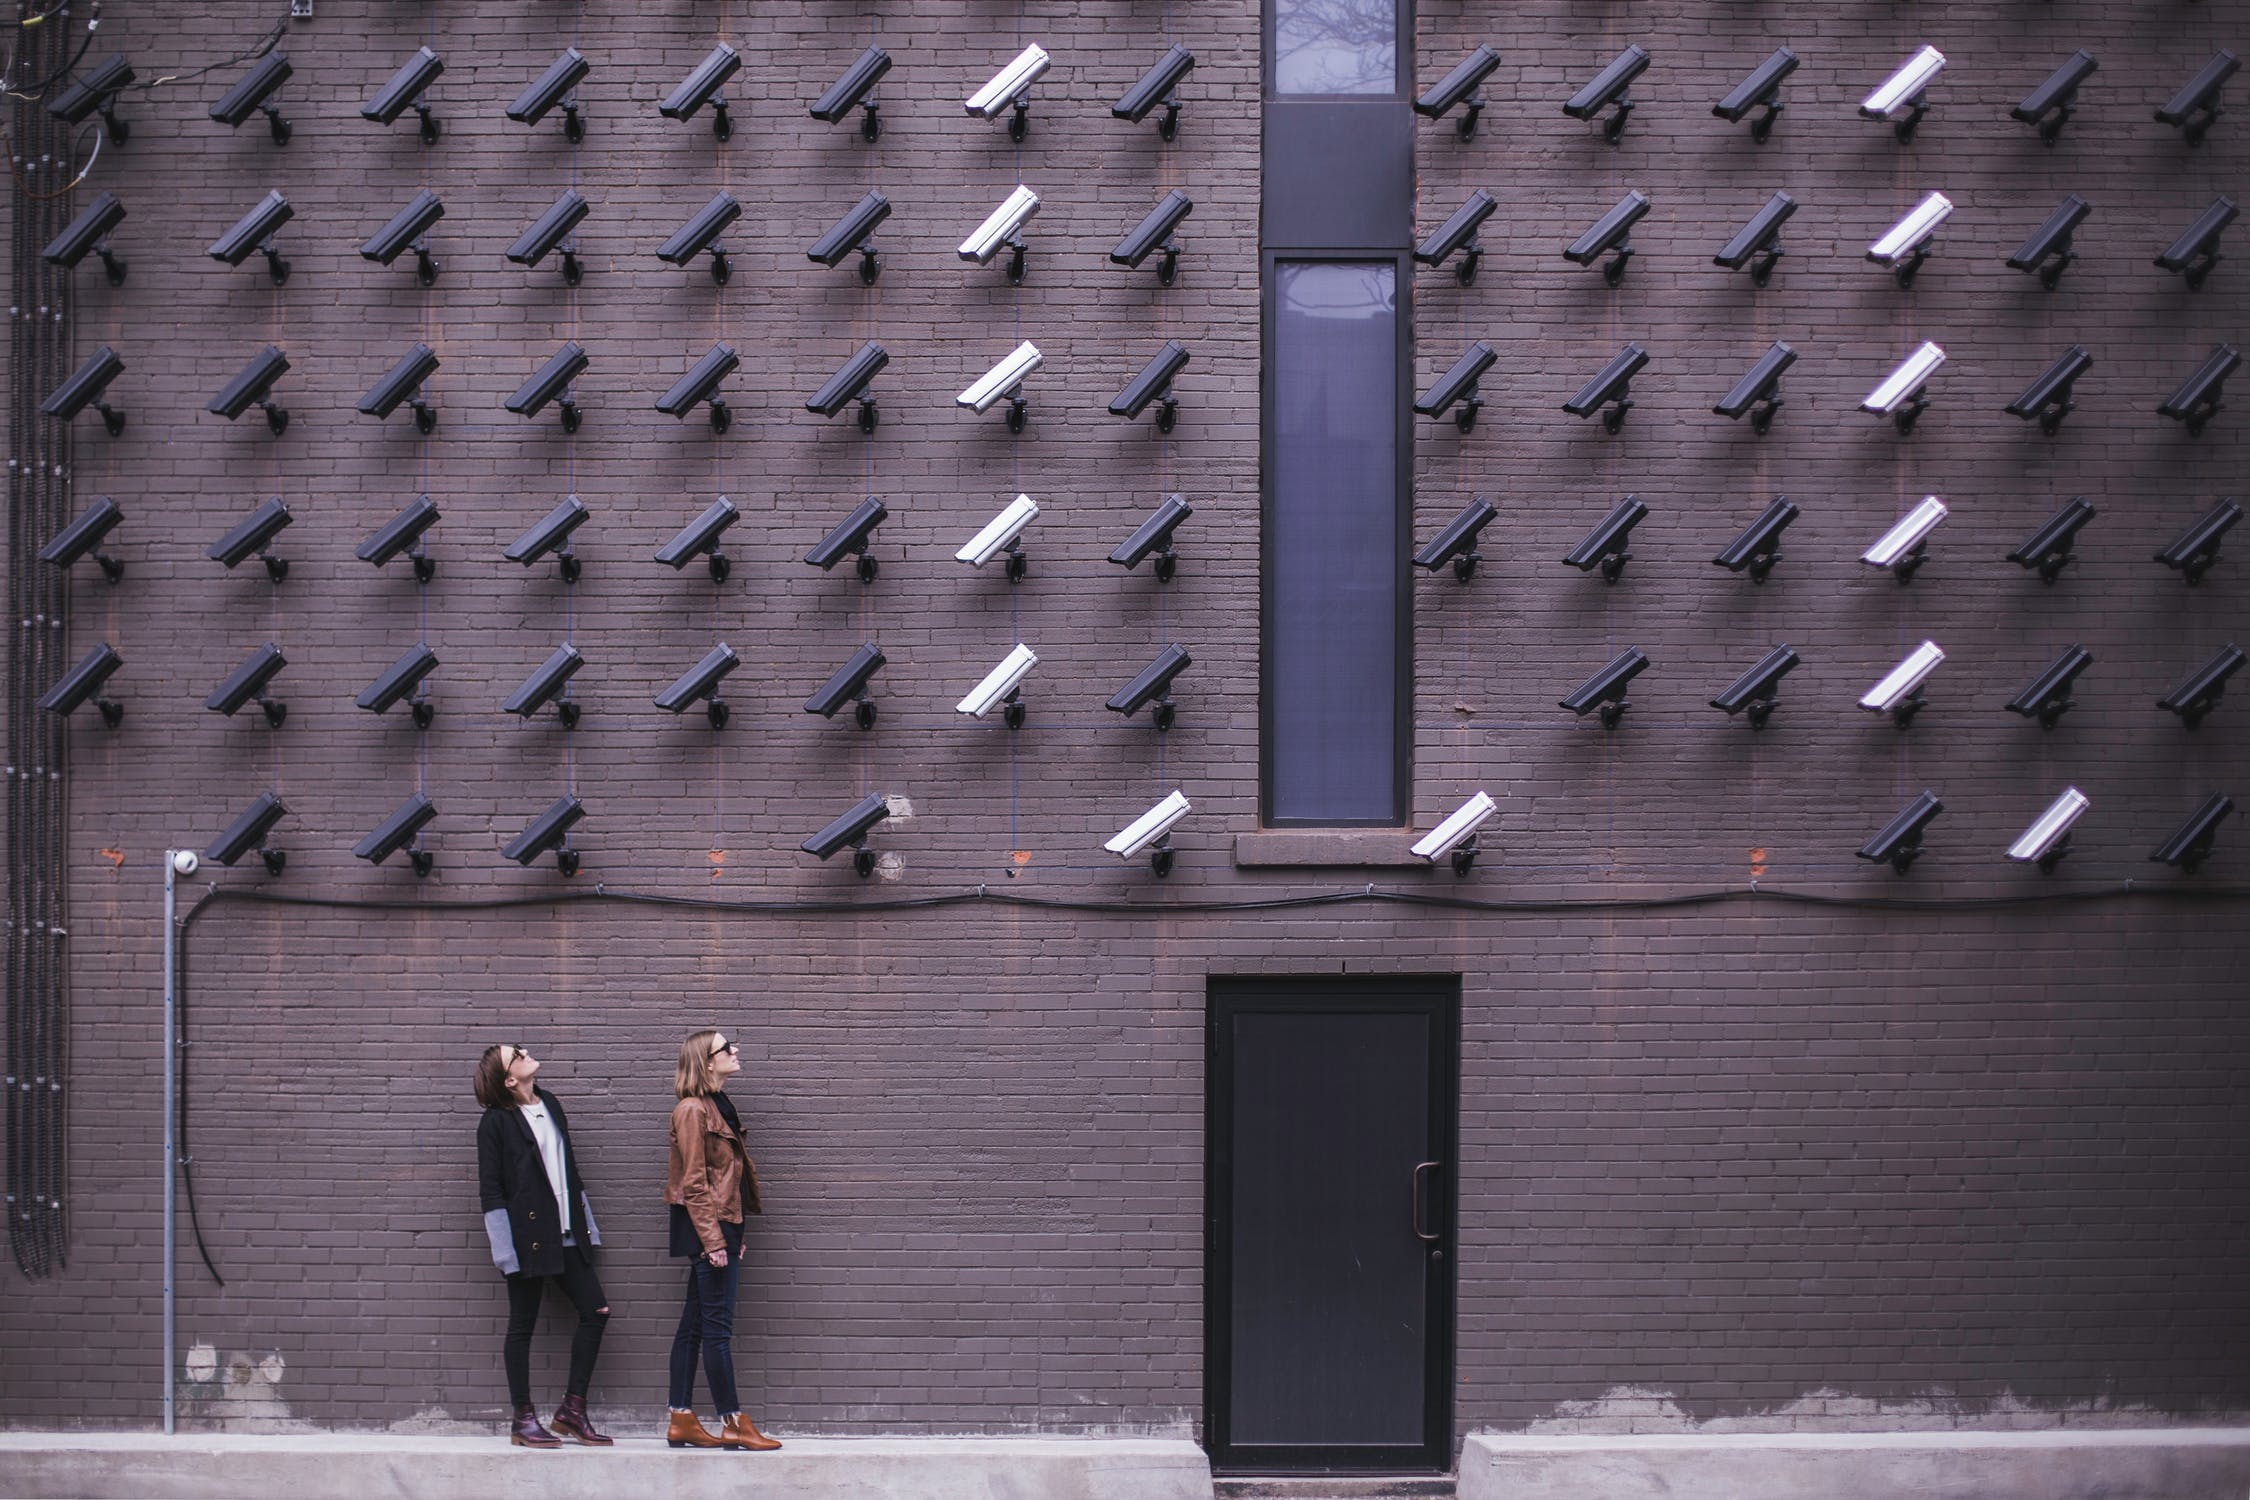 surveillance law - what you need to know